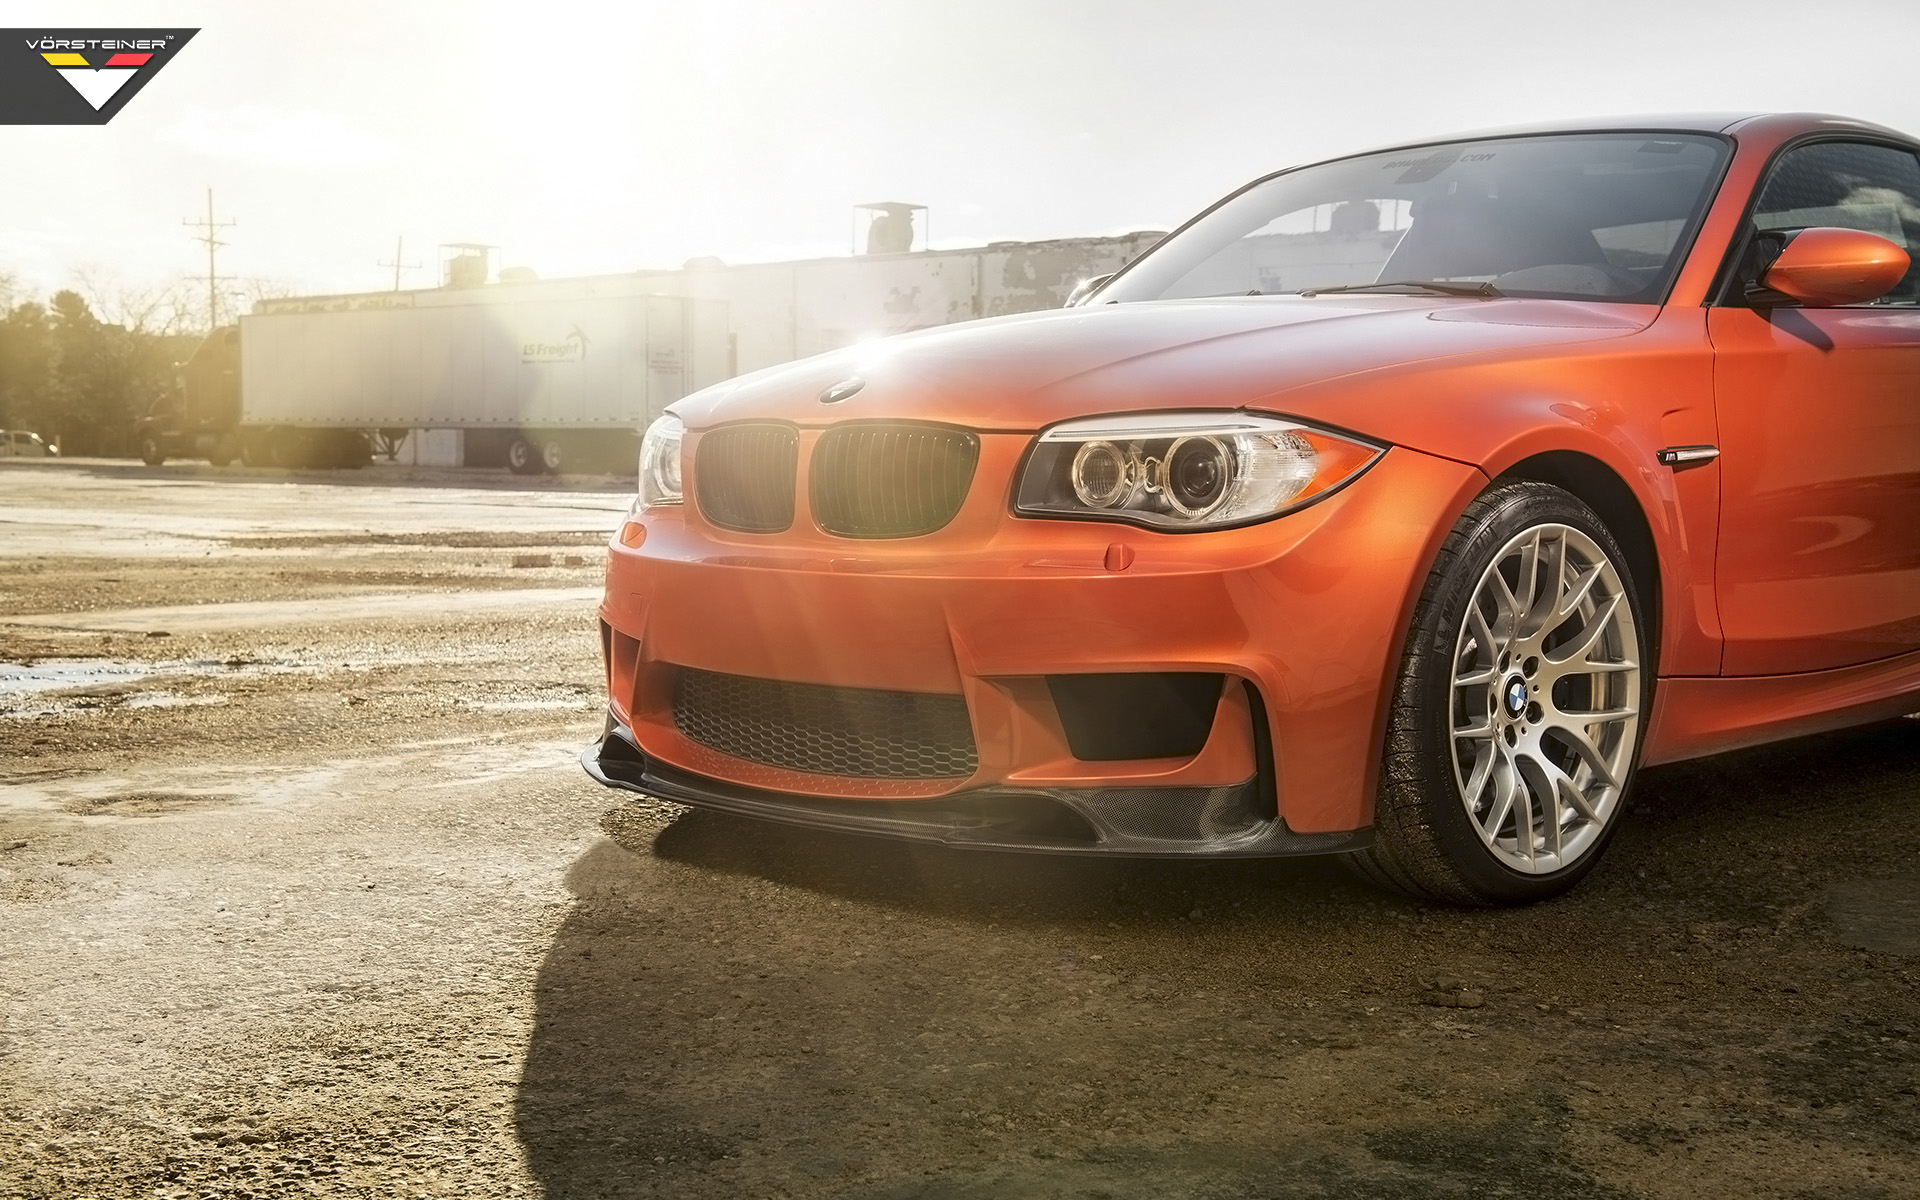 2014 Vorsteiner Bmw E82 1m Coupe Wallpaper Hd Car Wallpapers Id 4060